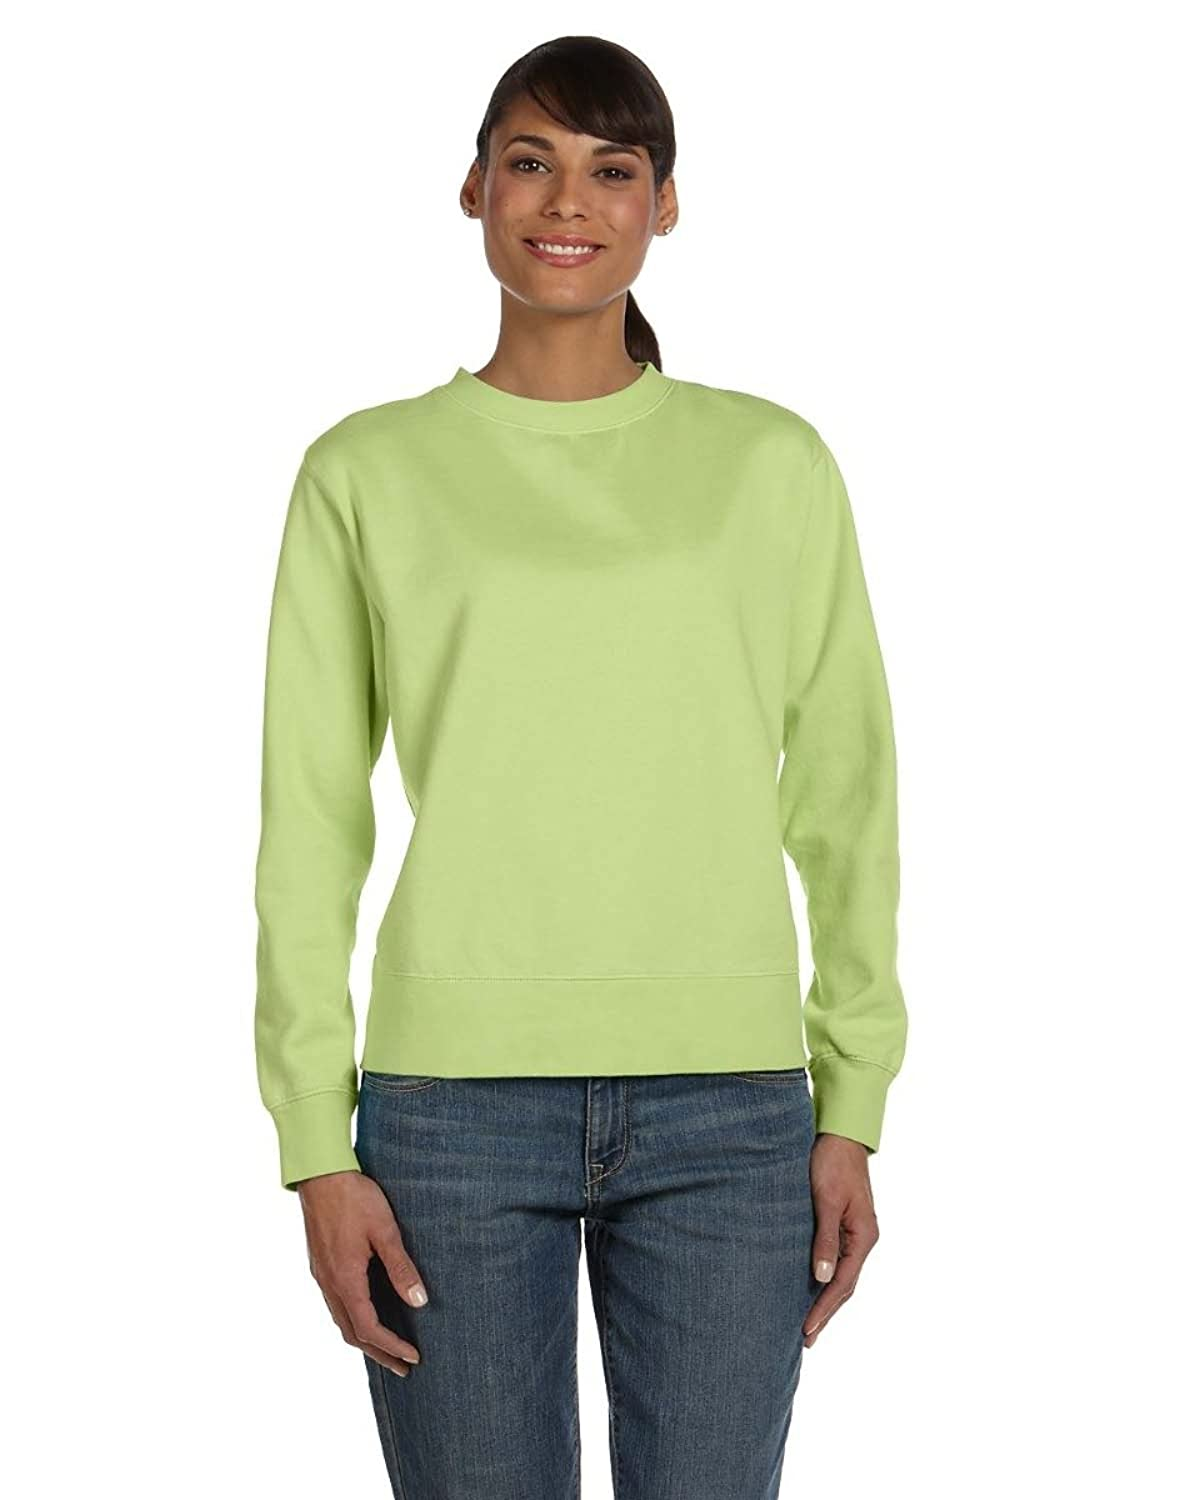 Comfort Colors Ladies' 10 Oz. Garment-dyed Wide-band Fleece Crew - Celedon